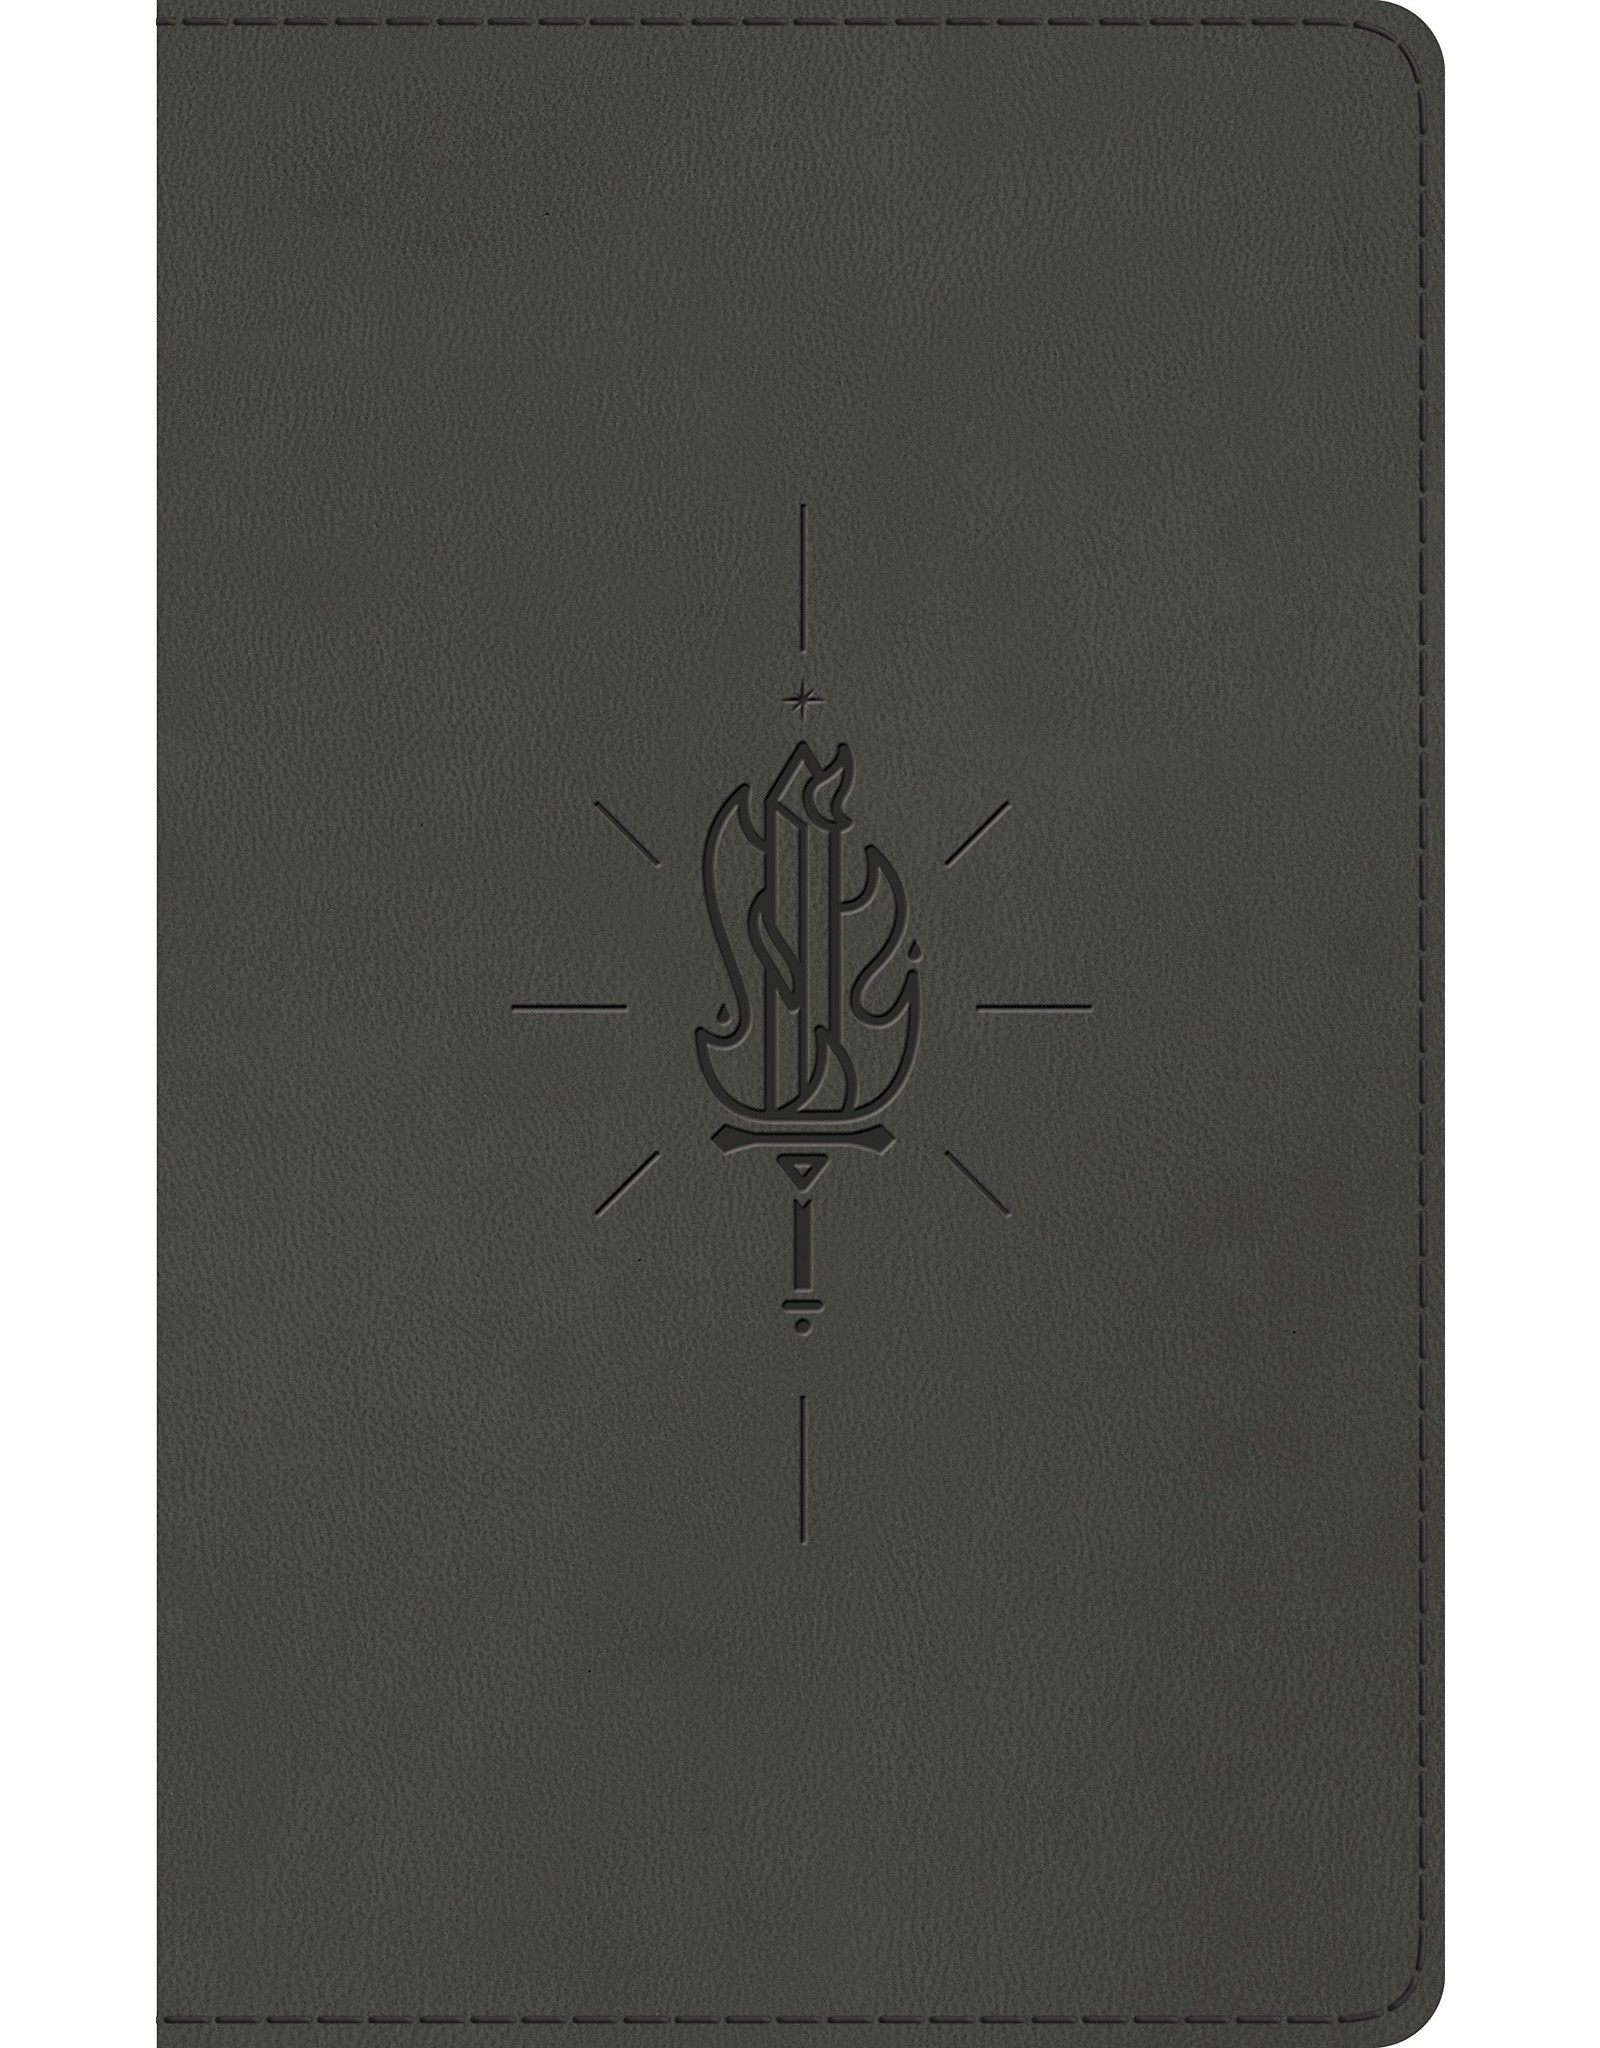 Crossway / Good News ESV Kid's Thinline Bible - Gray Sword Of The Spirit Design TruTone